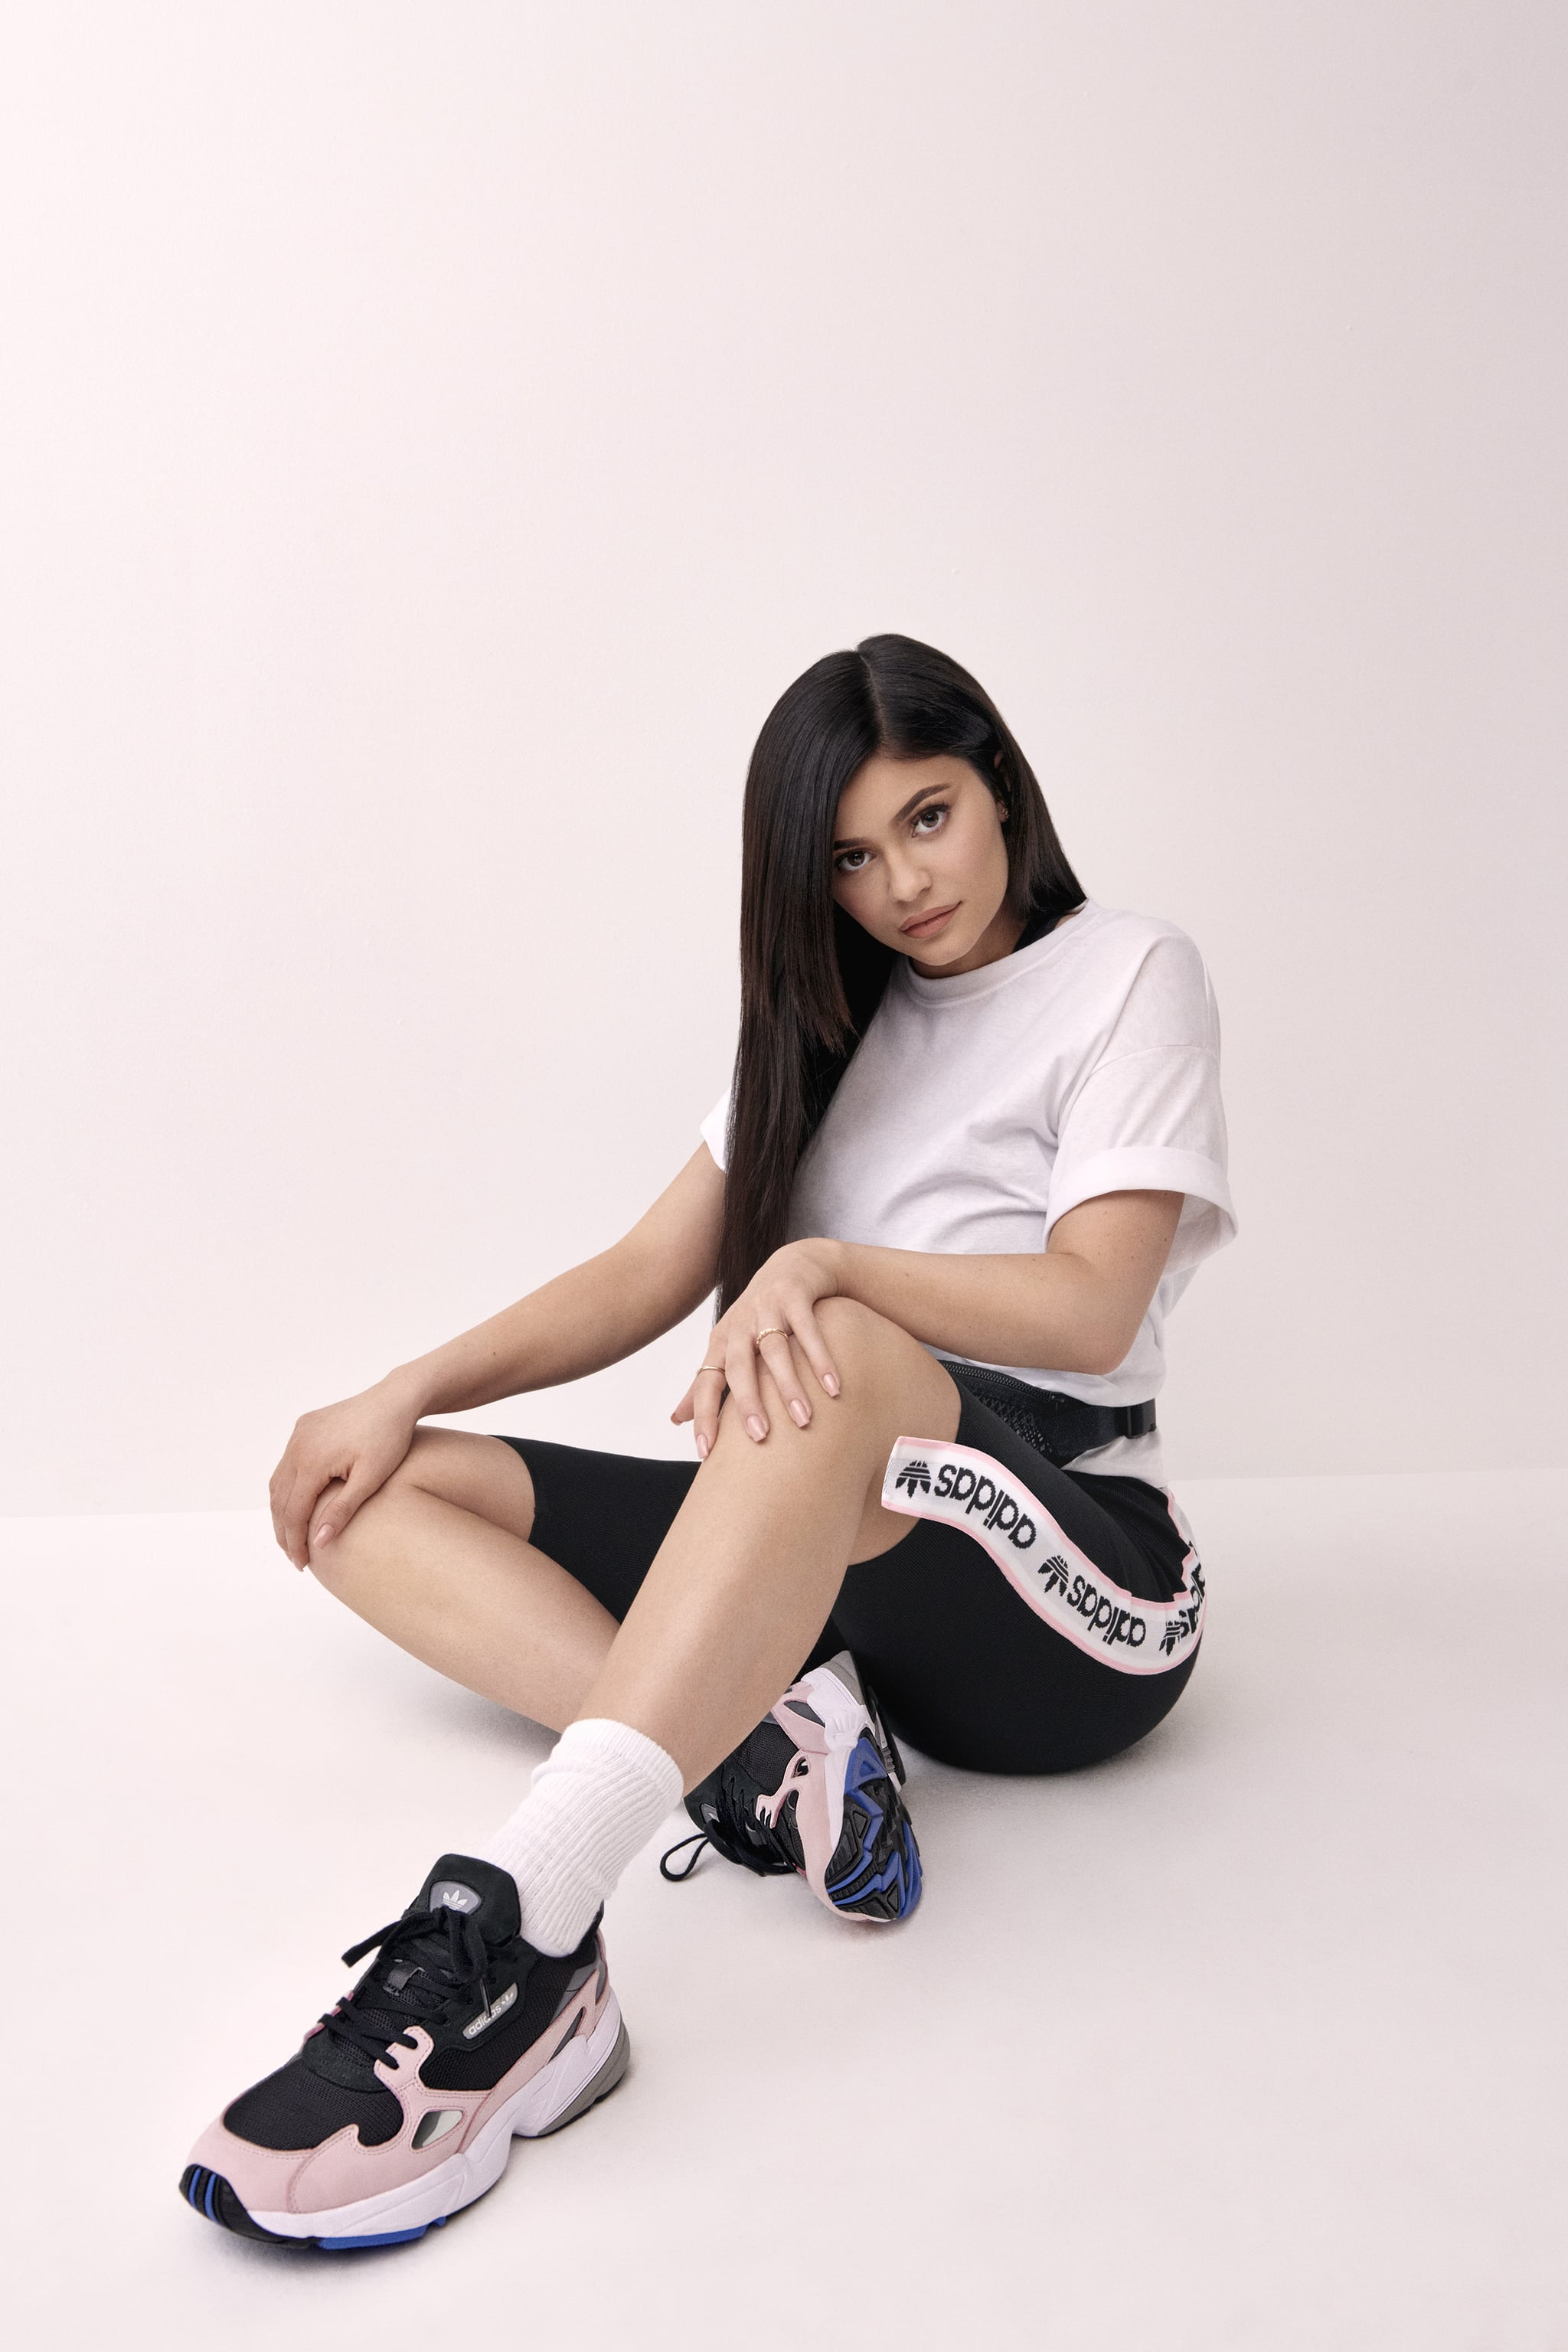 kylie jenner adidas shoes 2018